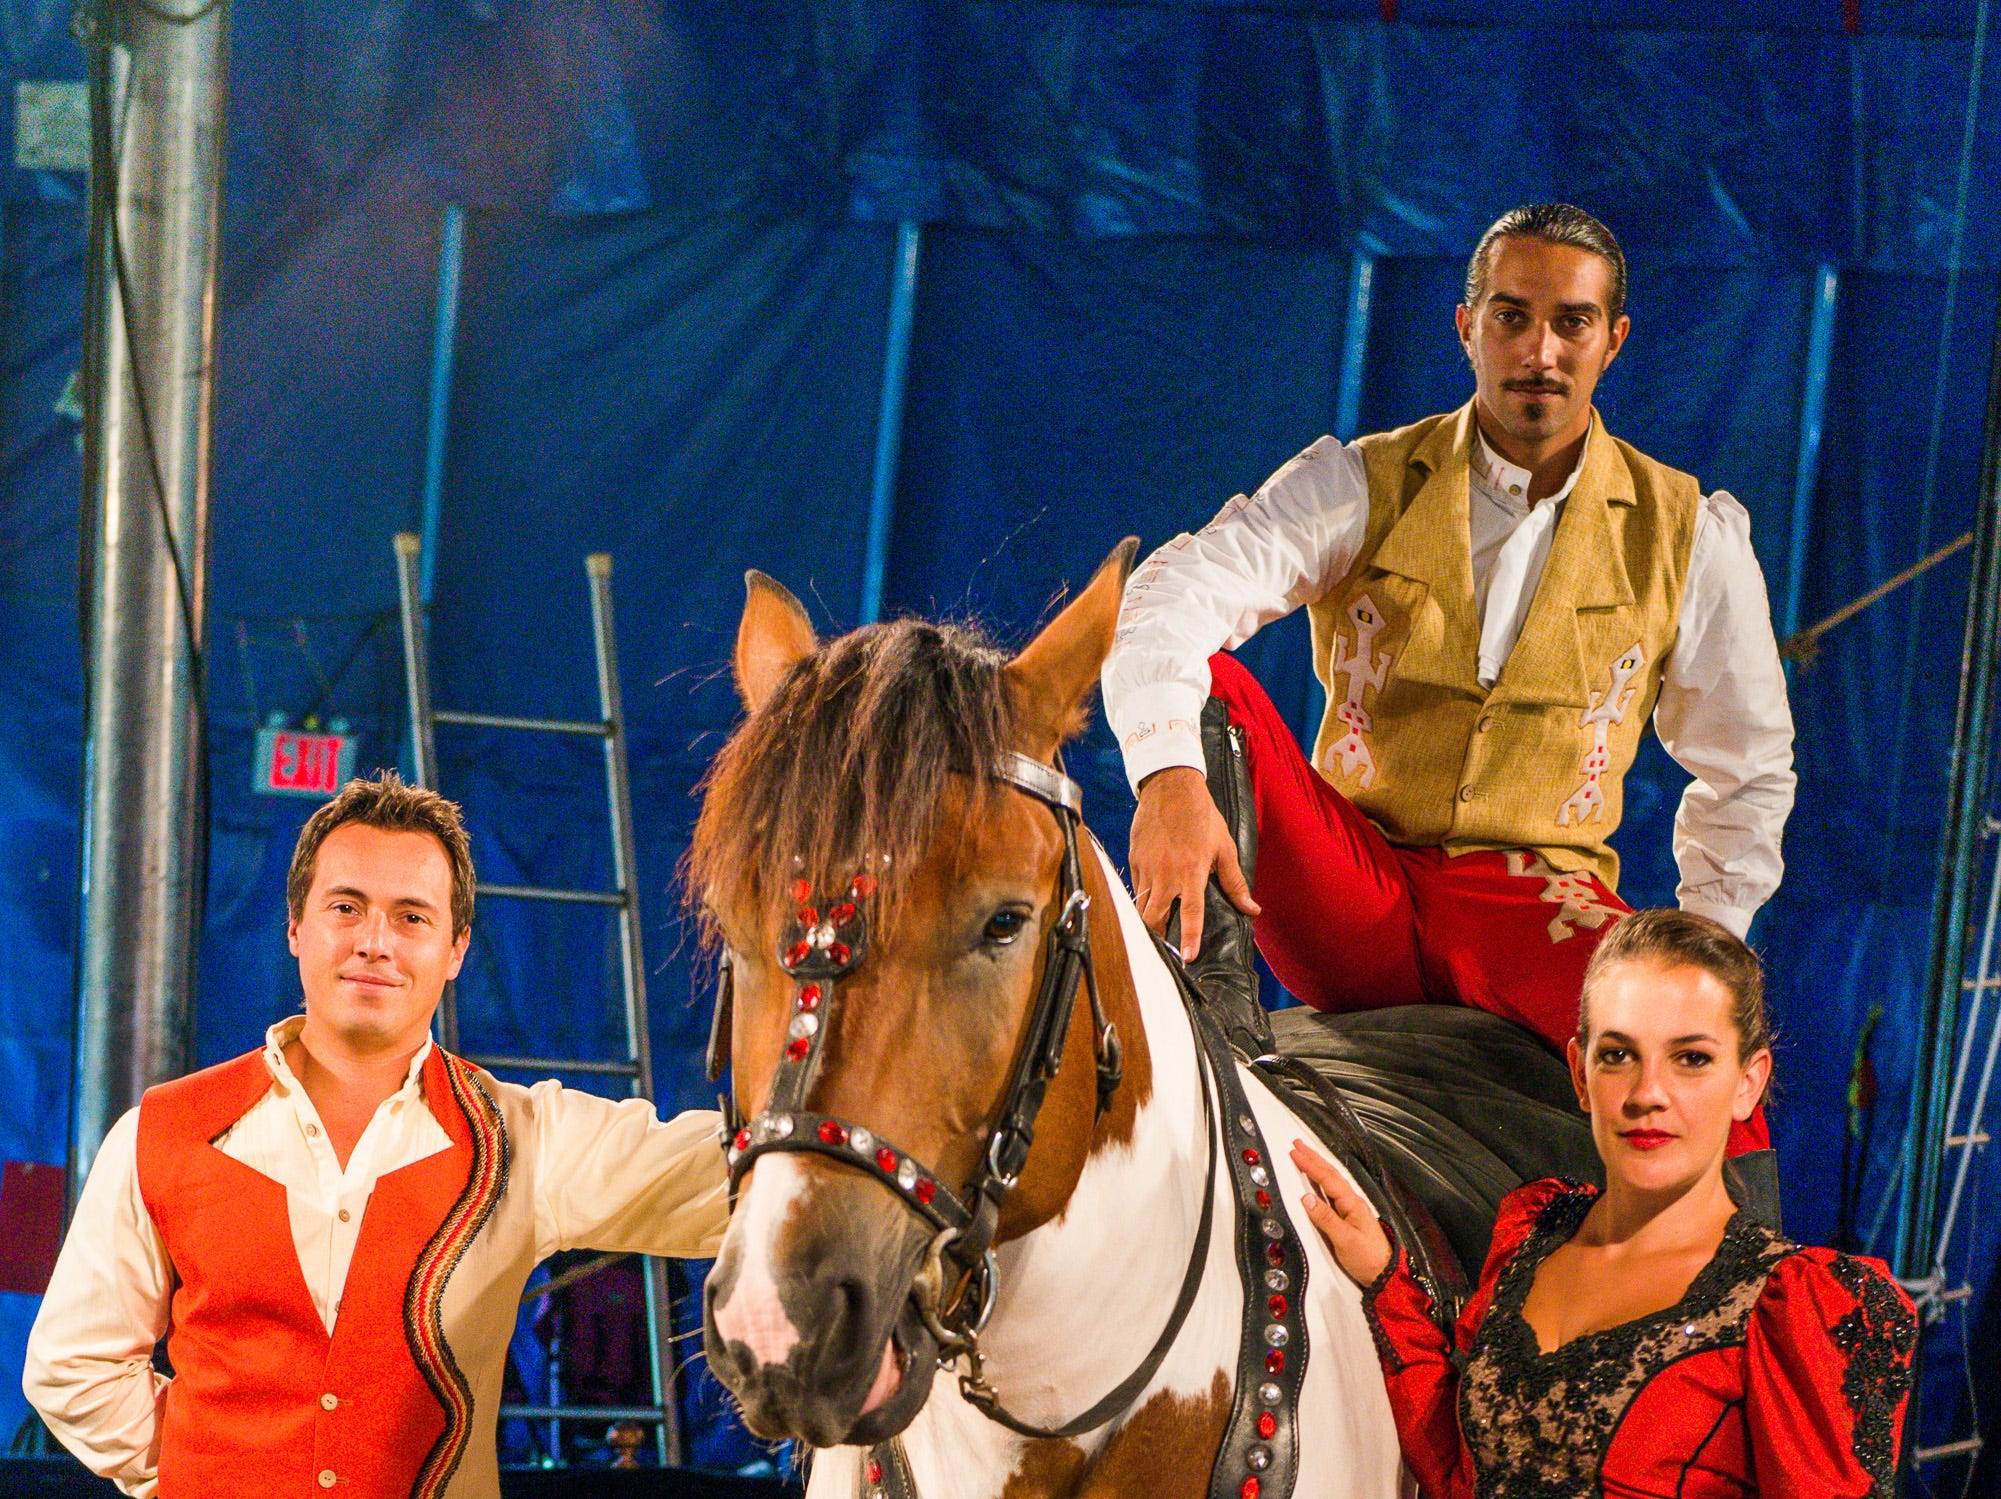 Zoppe: An Italian Family Circus has traditional acts such as equestrian performers.